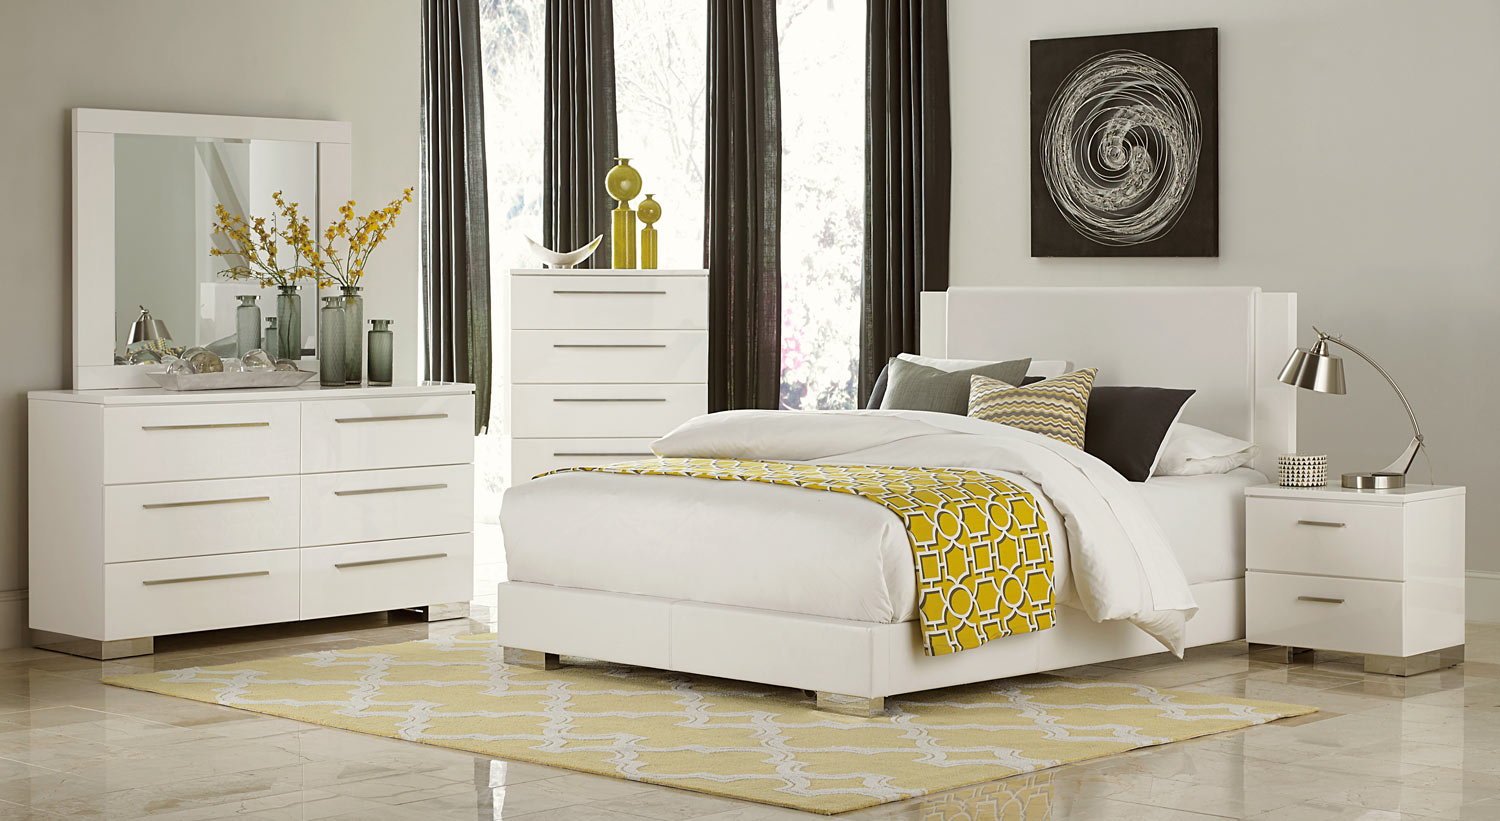 https://www.homelegancefurnitureonline.com/images/HE-1811-BEDROOM-SET.jpg